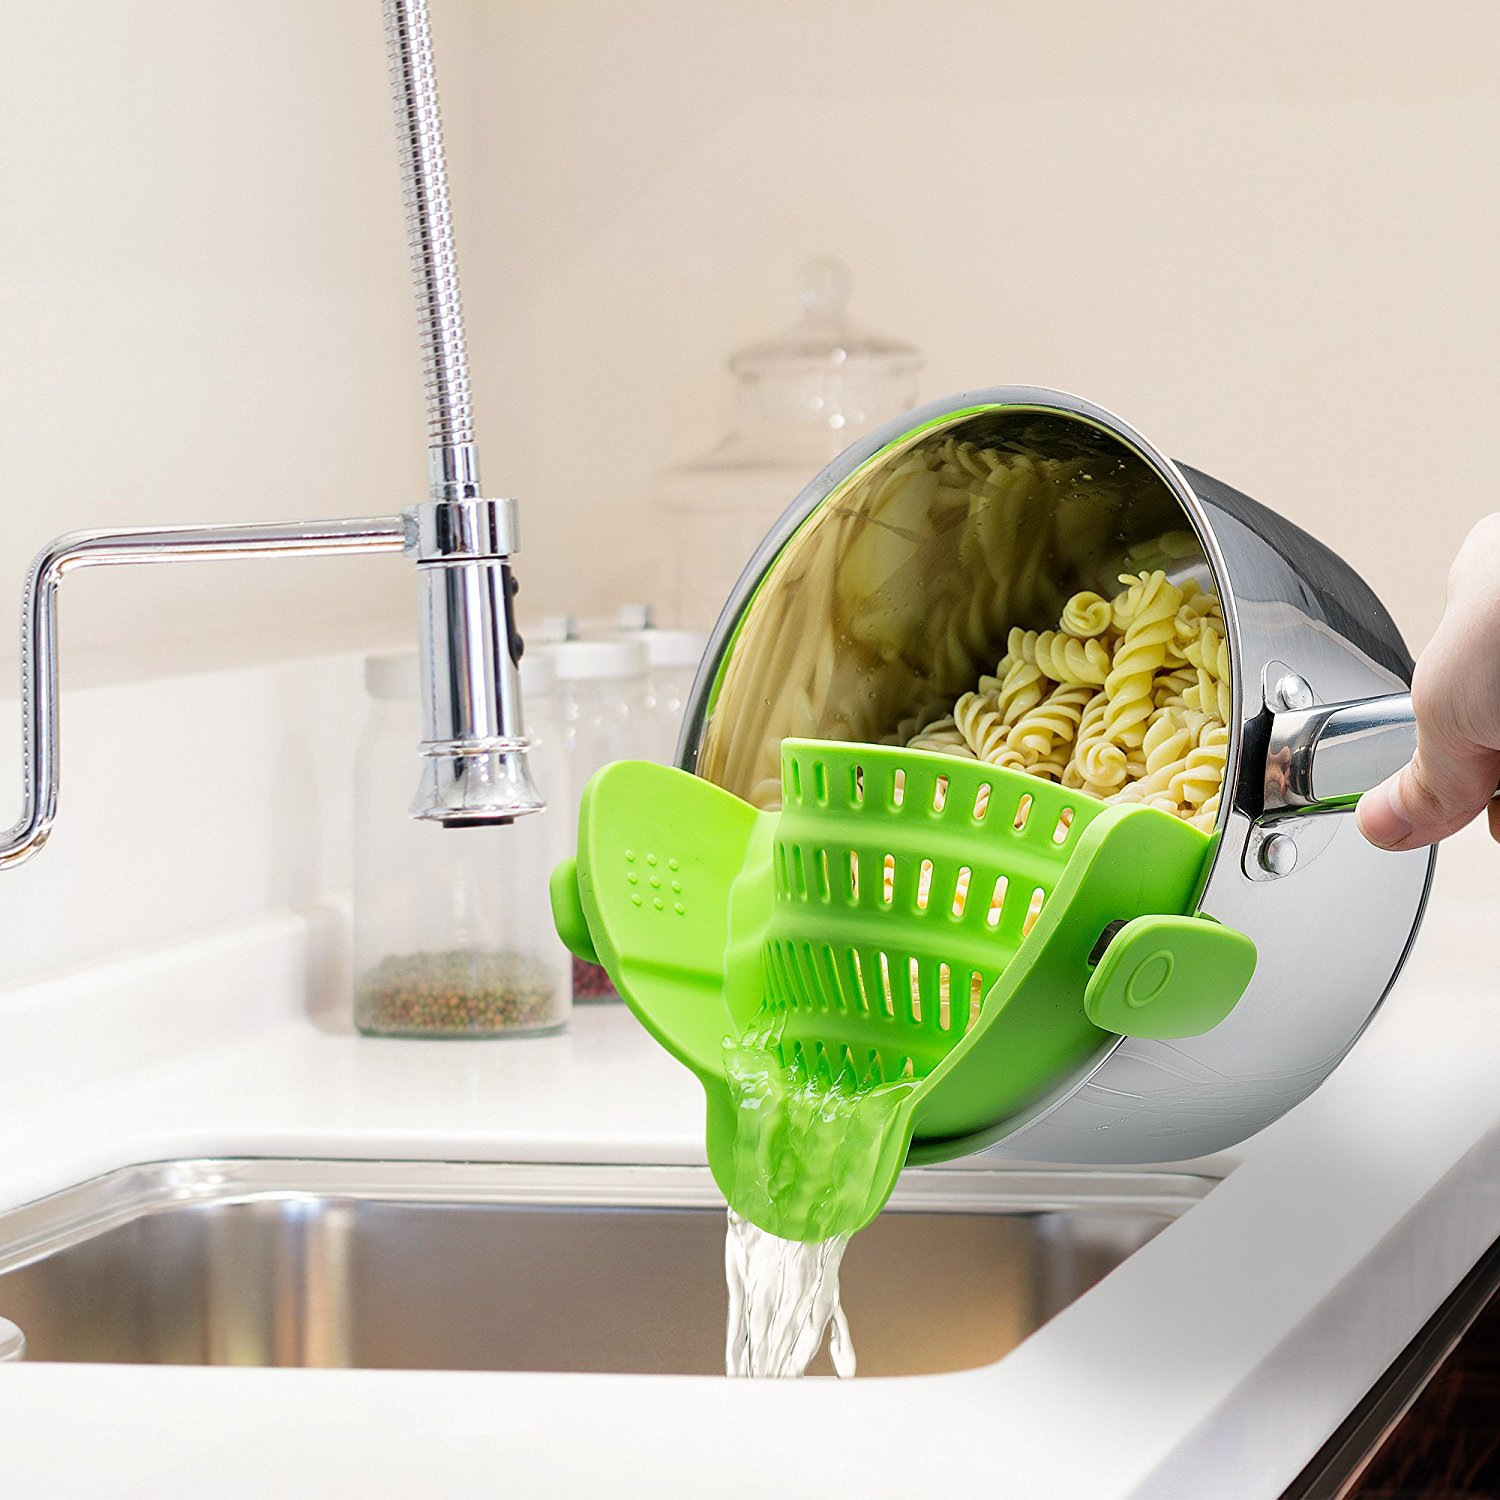 Snap 'N Strain Strainer Clip On Silicone Colander Fits all Pots and Bowls Lime Green by